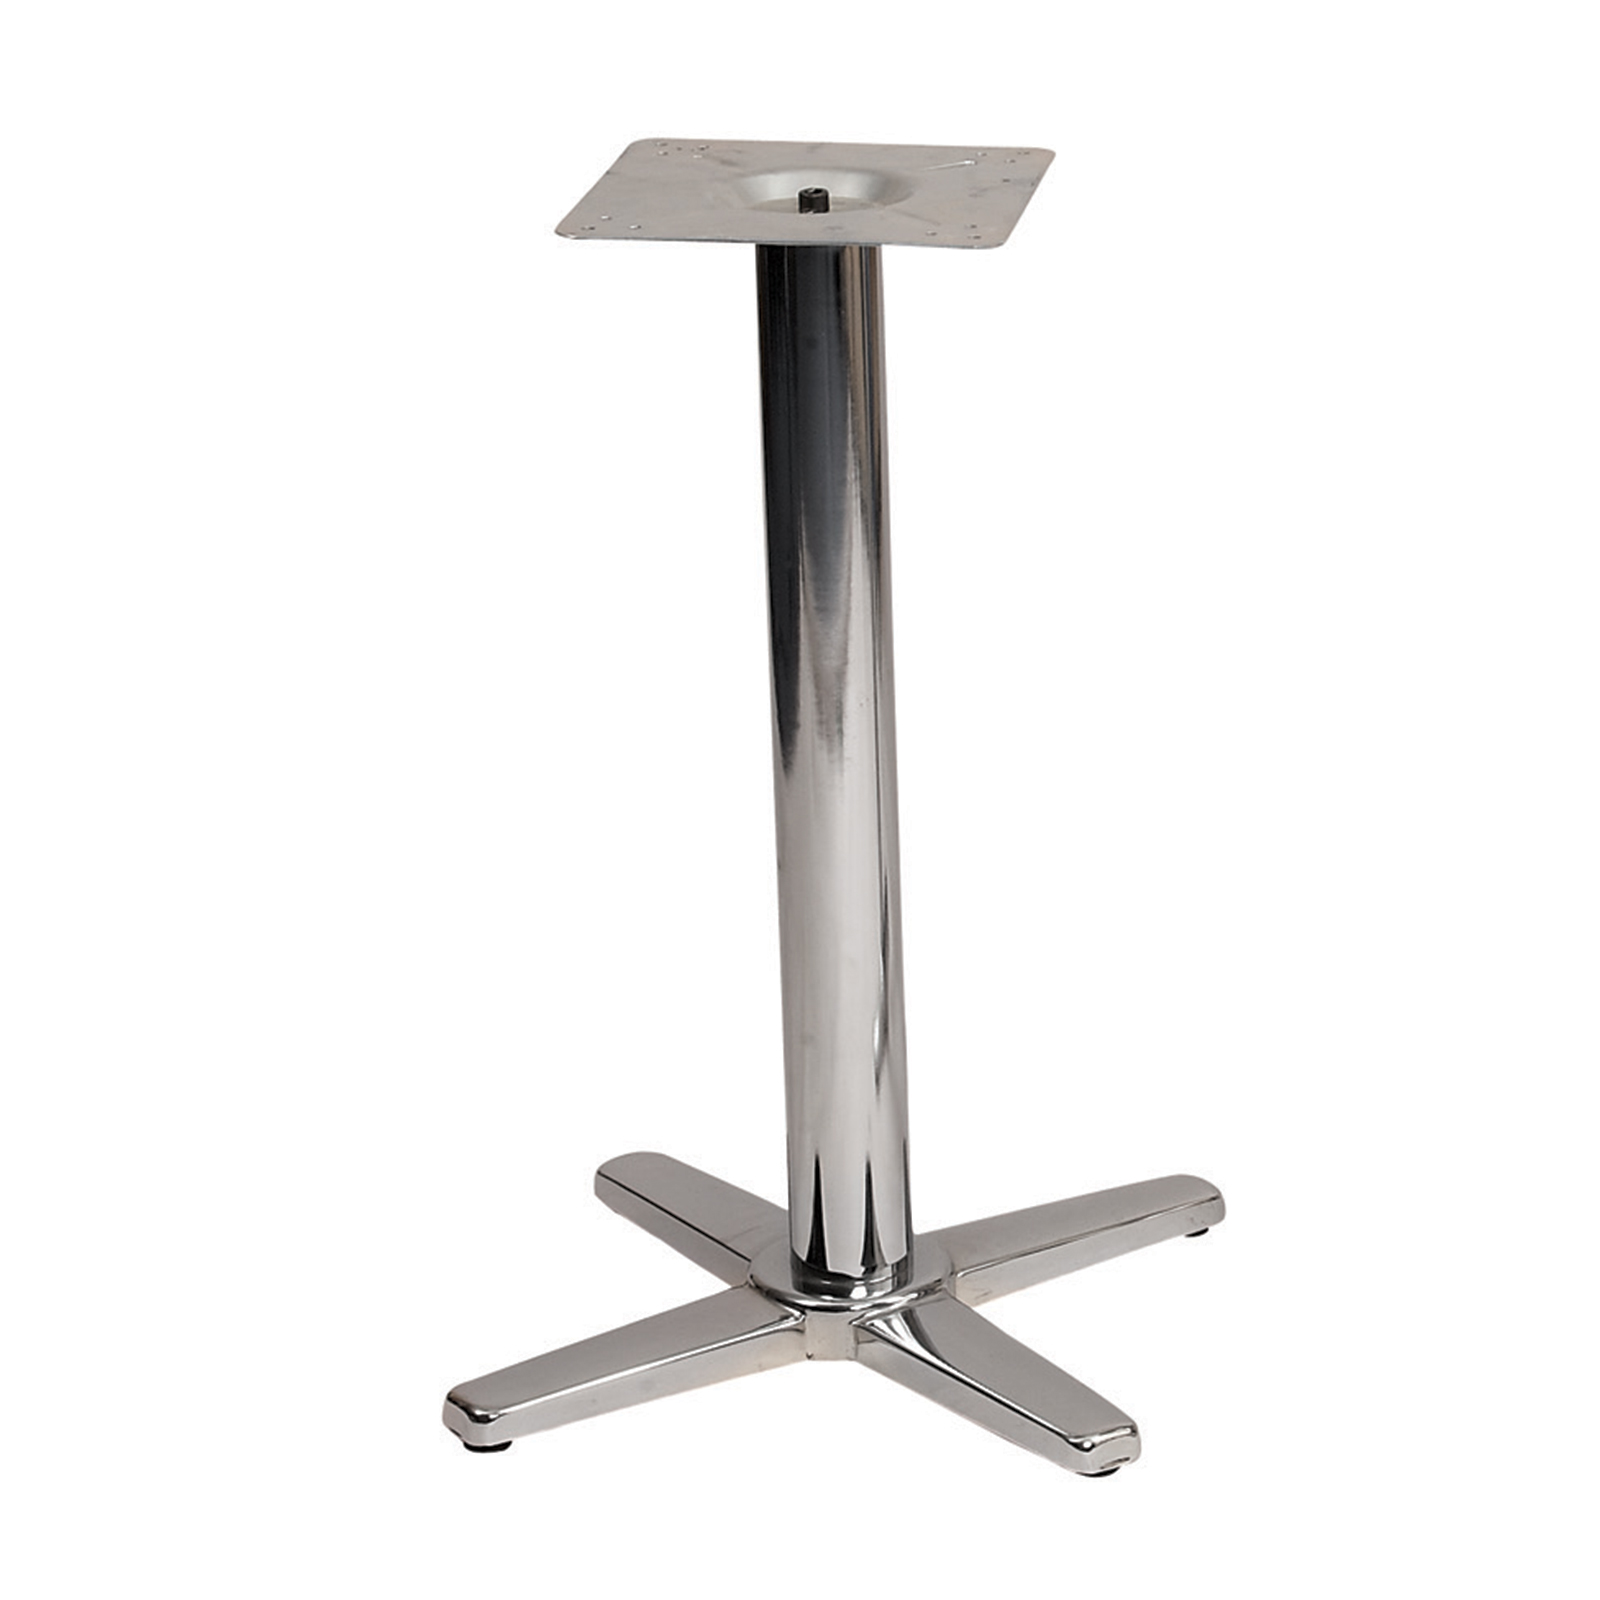 G & A Commercial Seating CQ3030 table base, metal